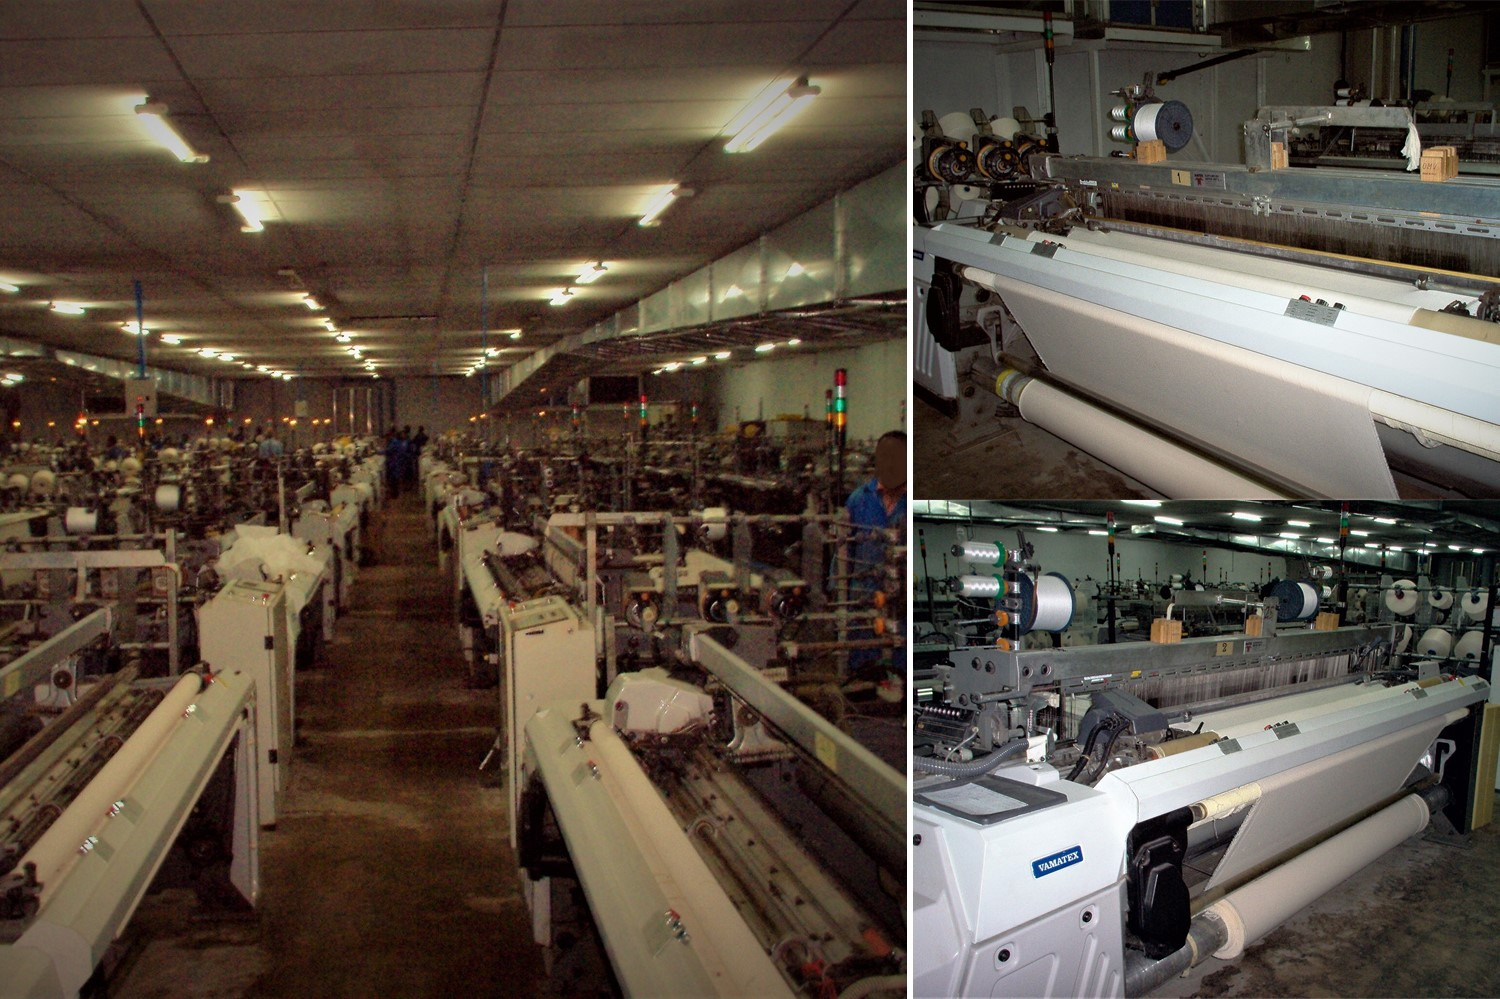 1.weaving looms_vamatex p1001es_reconditioning of exhisting textile plant